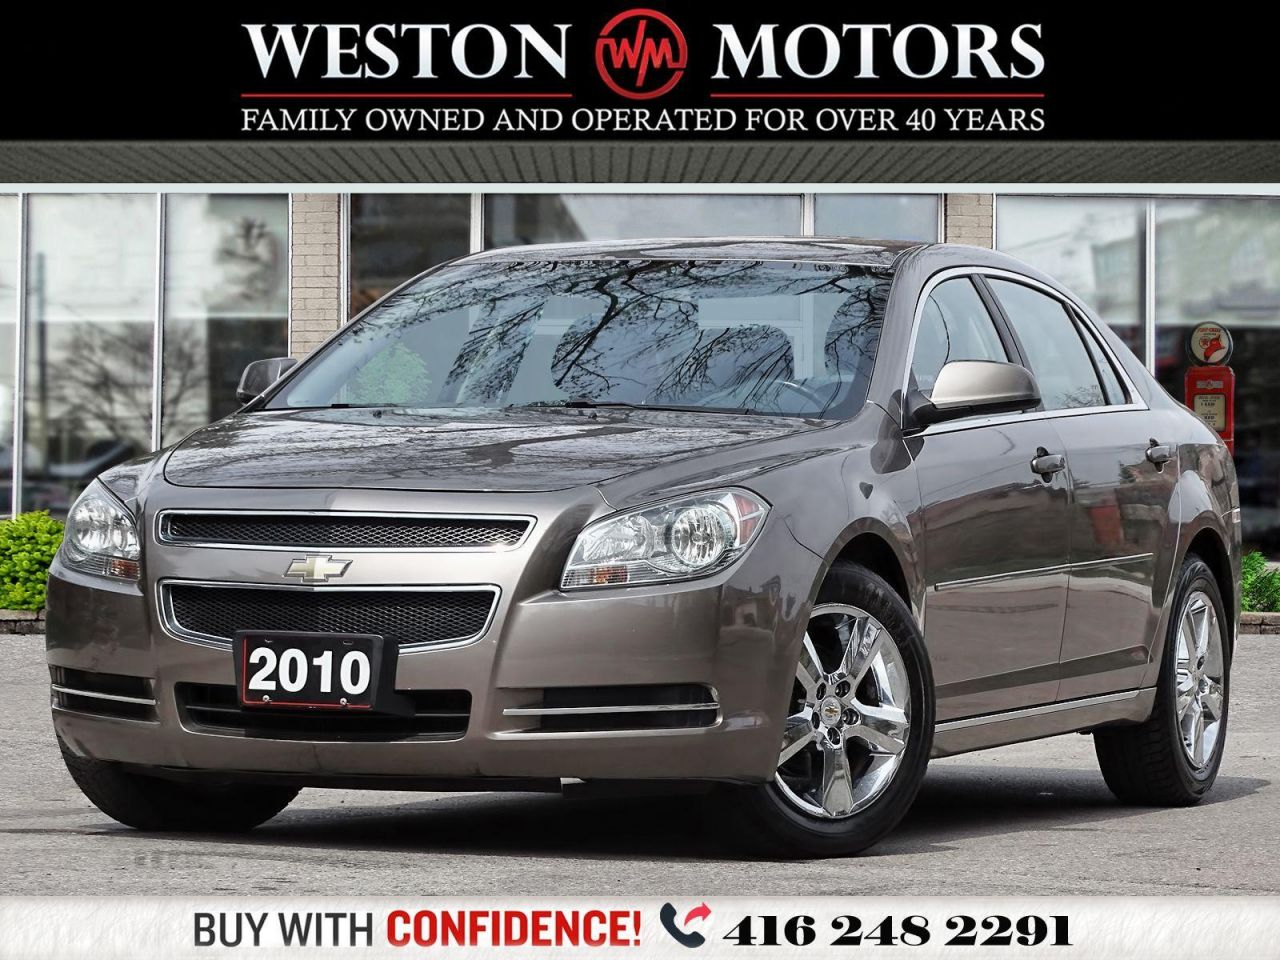 2010 Chevrolet Malibu LT*PLATINUM EDITION*2.4L*LEATHER*POWER CONTROLS